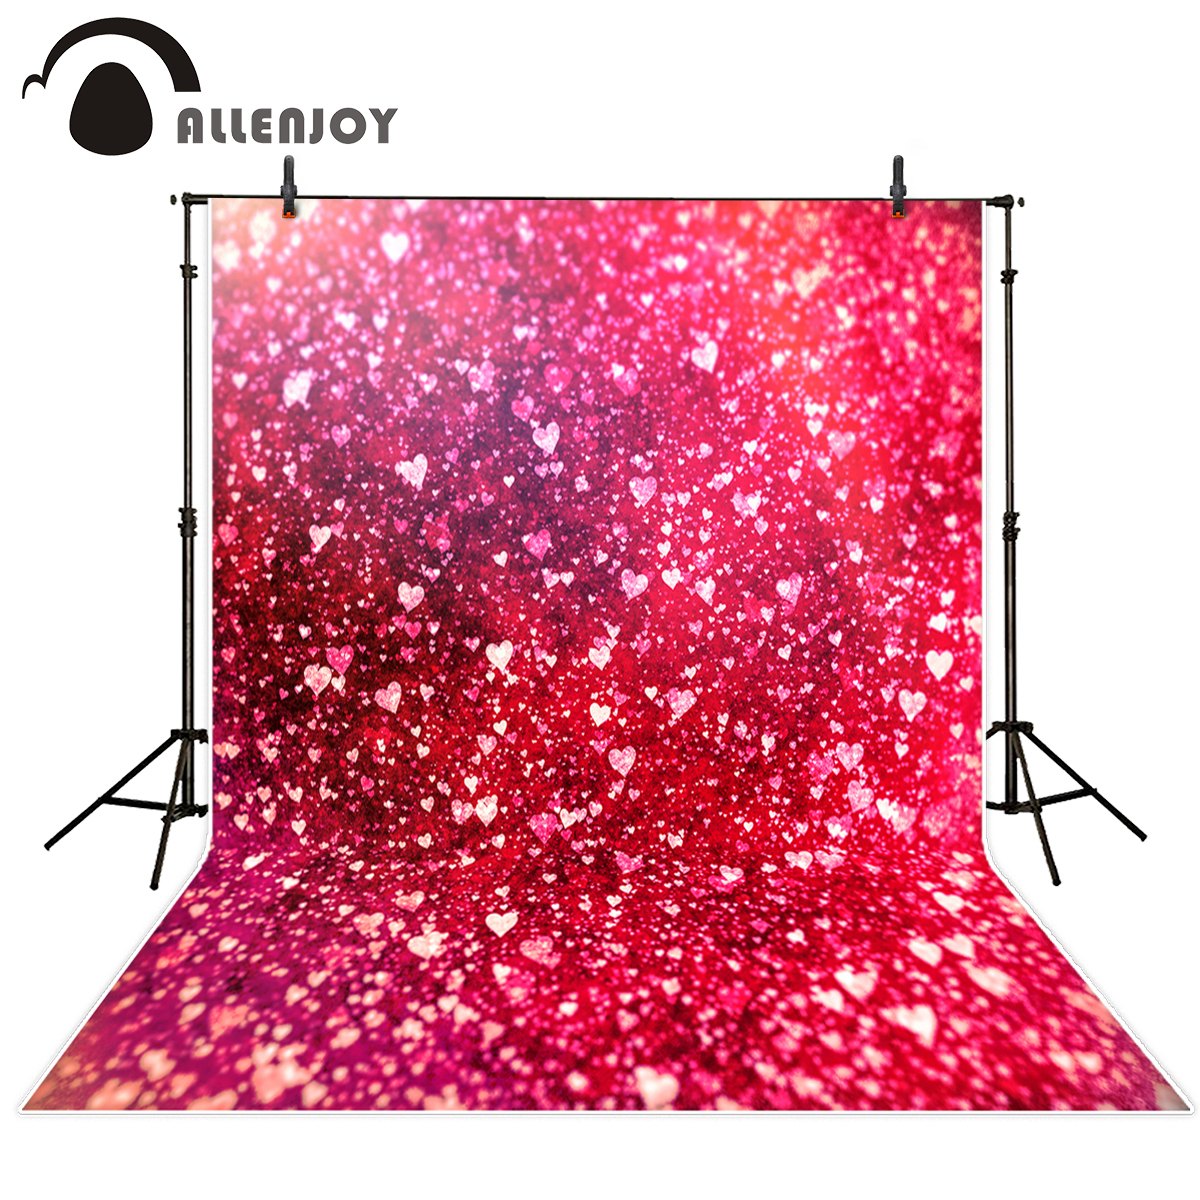 Allenjoy photography background shiny pink hearts wedding for studio photo backdrop vinyl cloth photocall newborn allenjoy photography backdrops valentine s day love colourful heart wedding background for studio photo backdrop vinyl